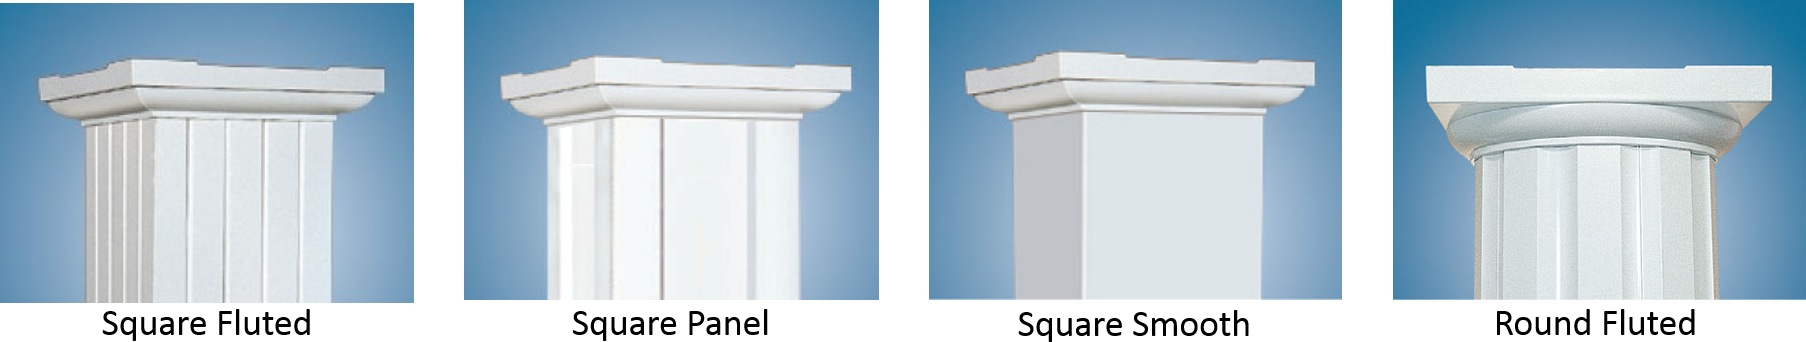 Column Profiles Labeled